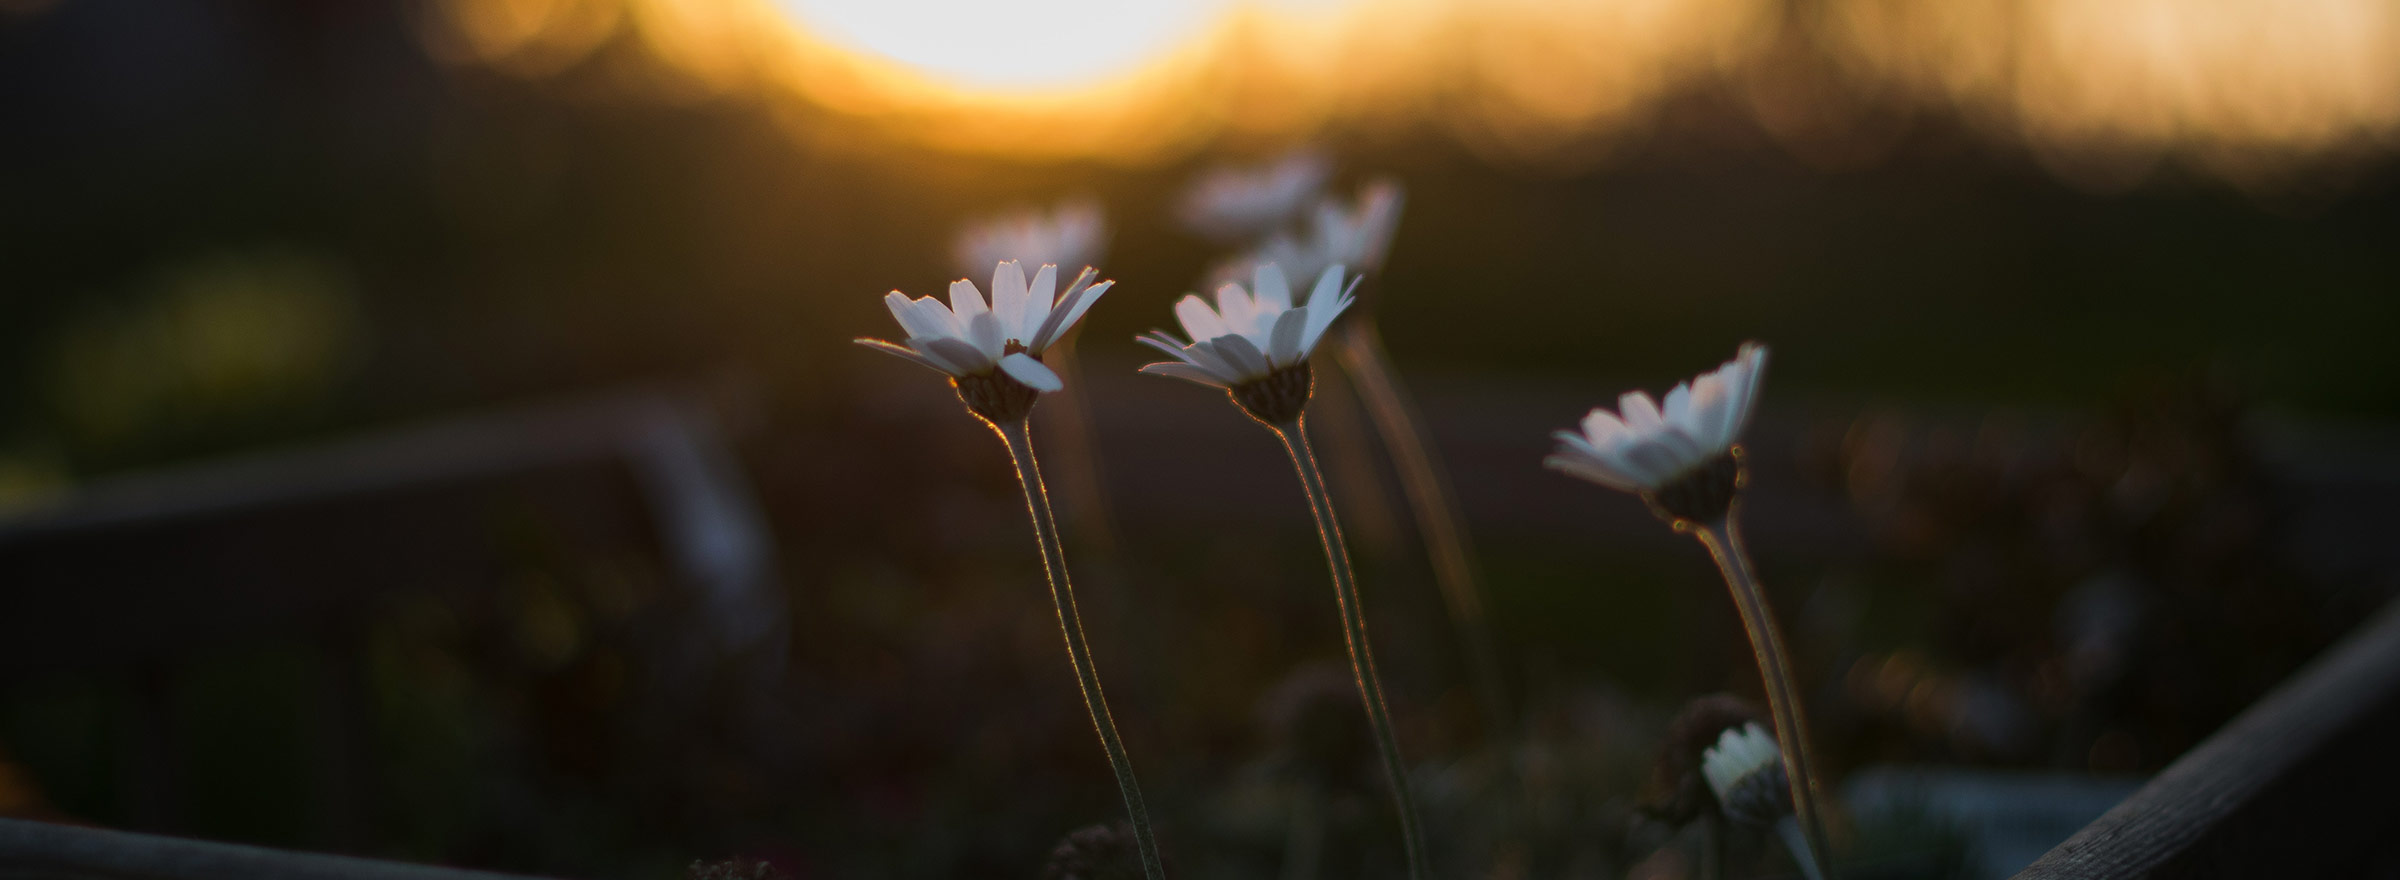 daisies growing toward sunlight, symbolizing returns on investing time and money on social media for nonprofits